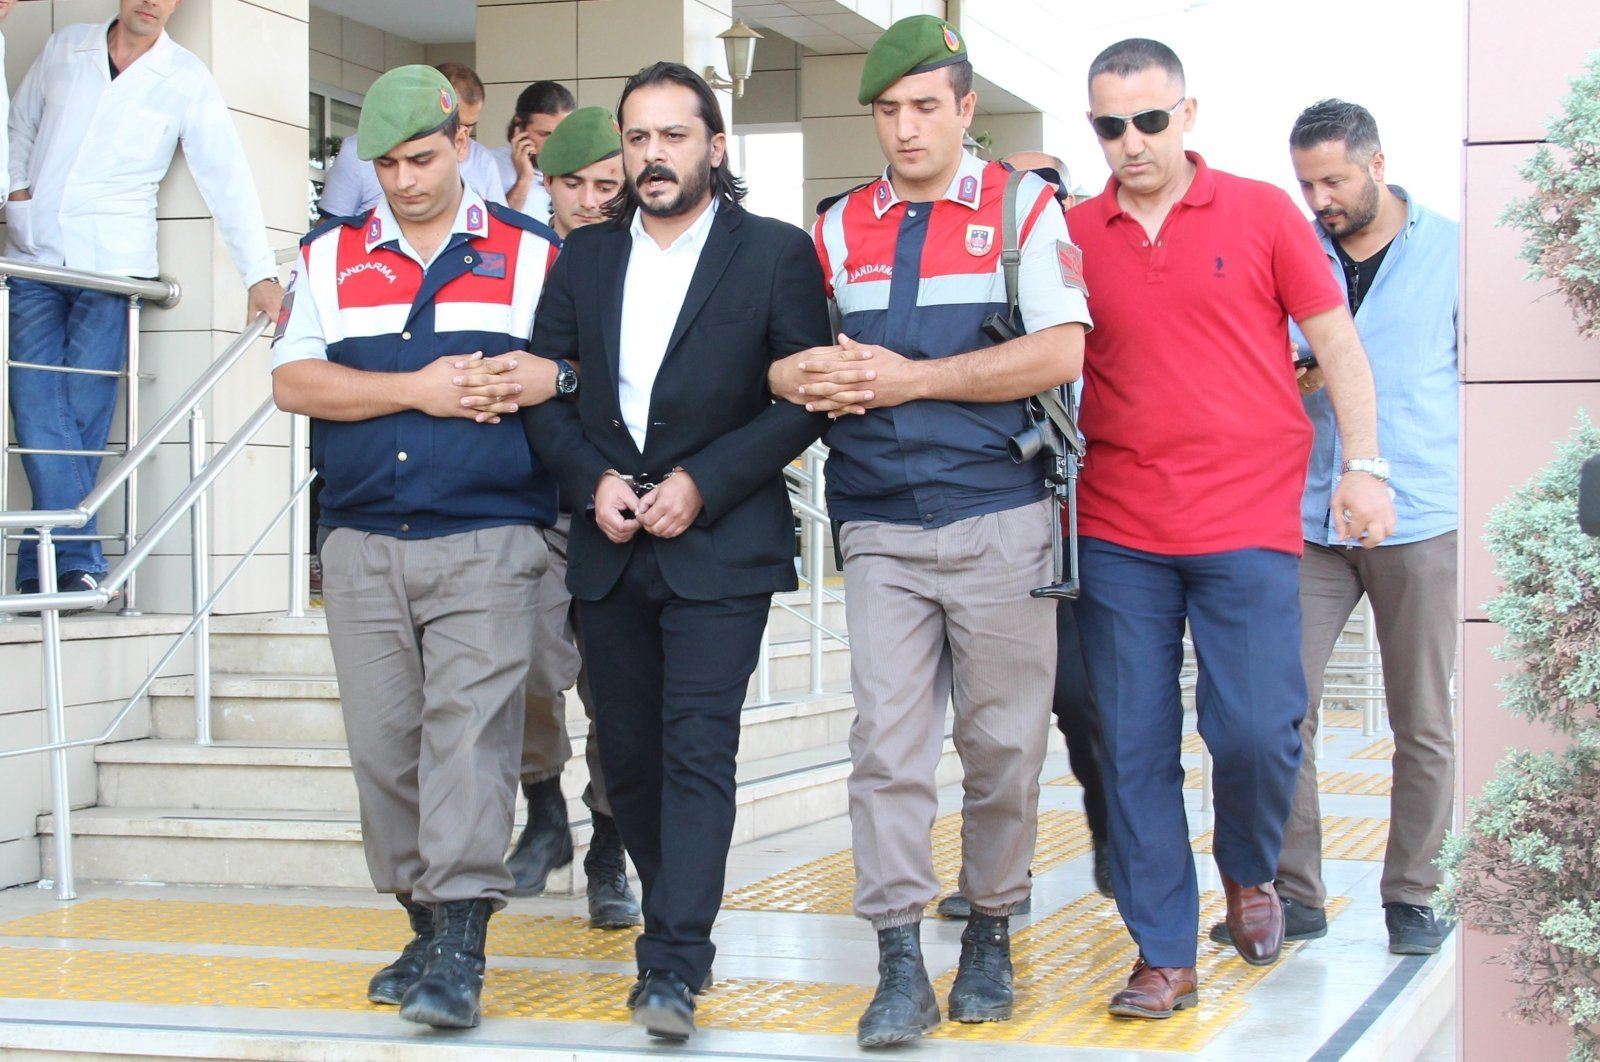 Writer Emrah Serbes is escorted out of a court by gendarmerie officers in Izmir, Turkey, in this undated photo. (IHA Photo)